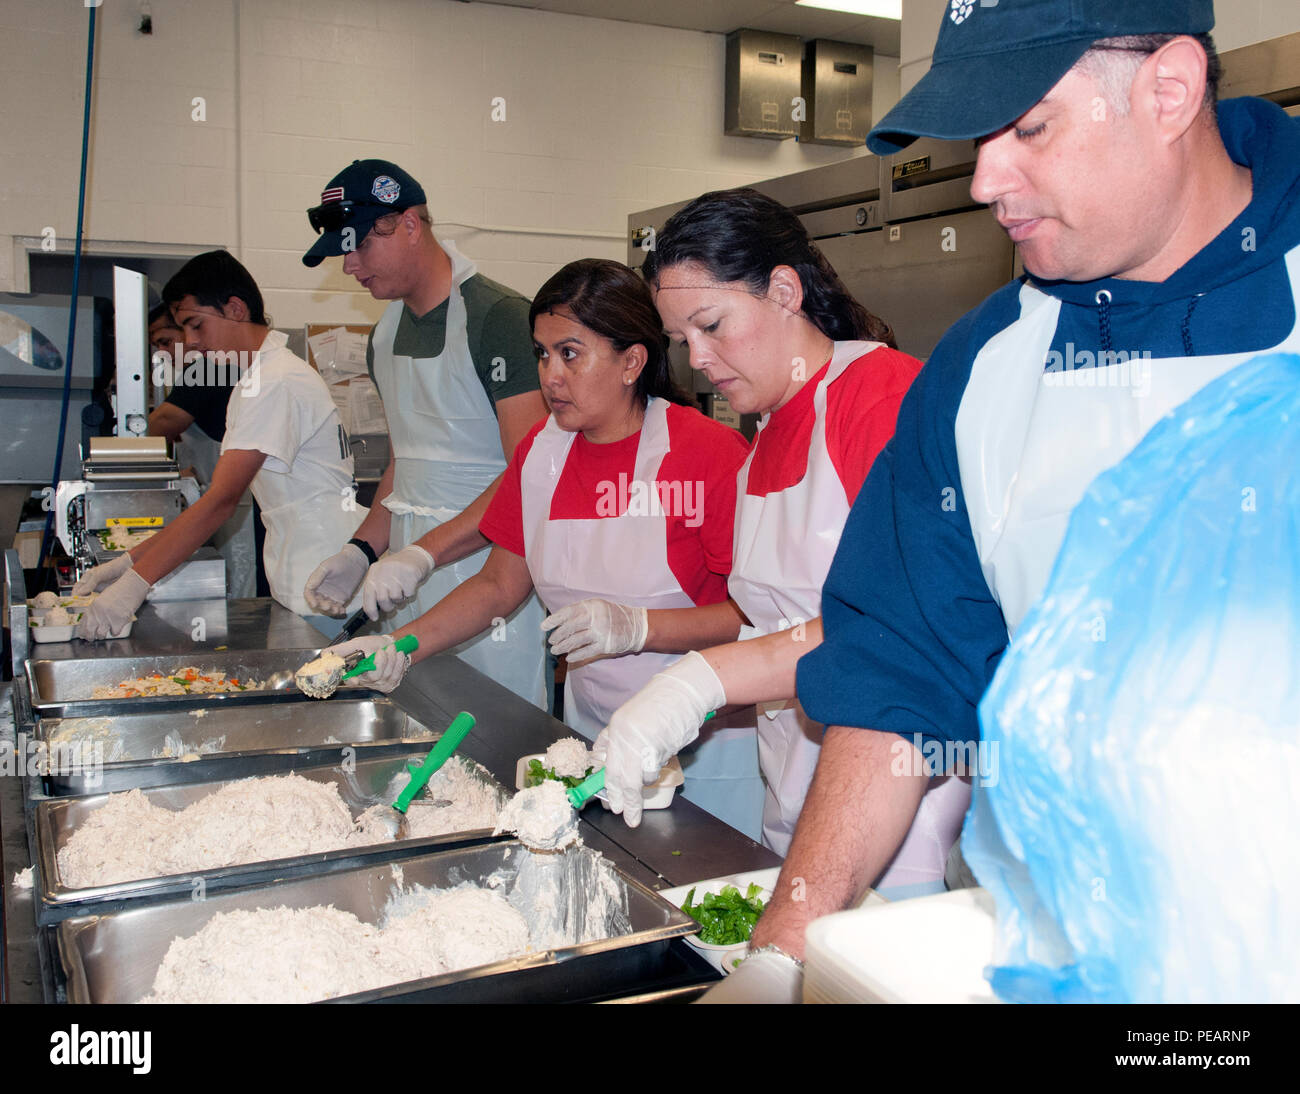 Members of the 149th Fighter Wing's Operations Group from Joint Base San Antonio served food onto microwave-safe food trays at a Meals on Wheels kitchen in San Antonio, Texas, Nov. 23, in preparation for the busy Thanksgiving week.  Older adults at least 60 years of age who are homebound, unable to cook for themselves and lack outside support are eligible to receive Meal on Wheels services. - Stock Image